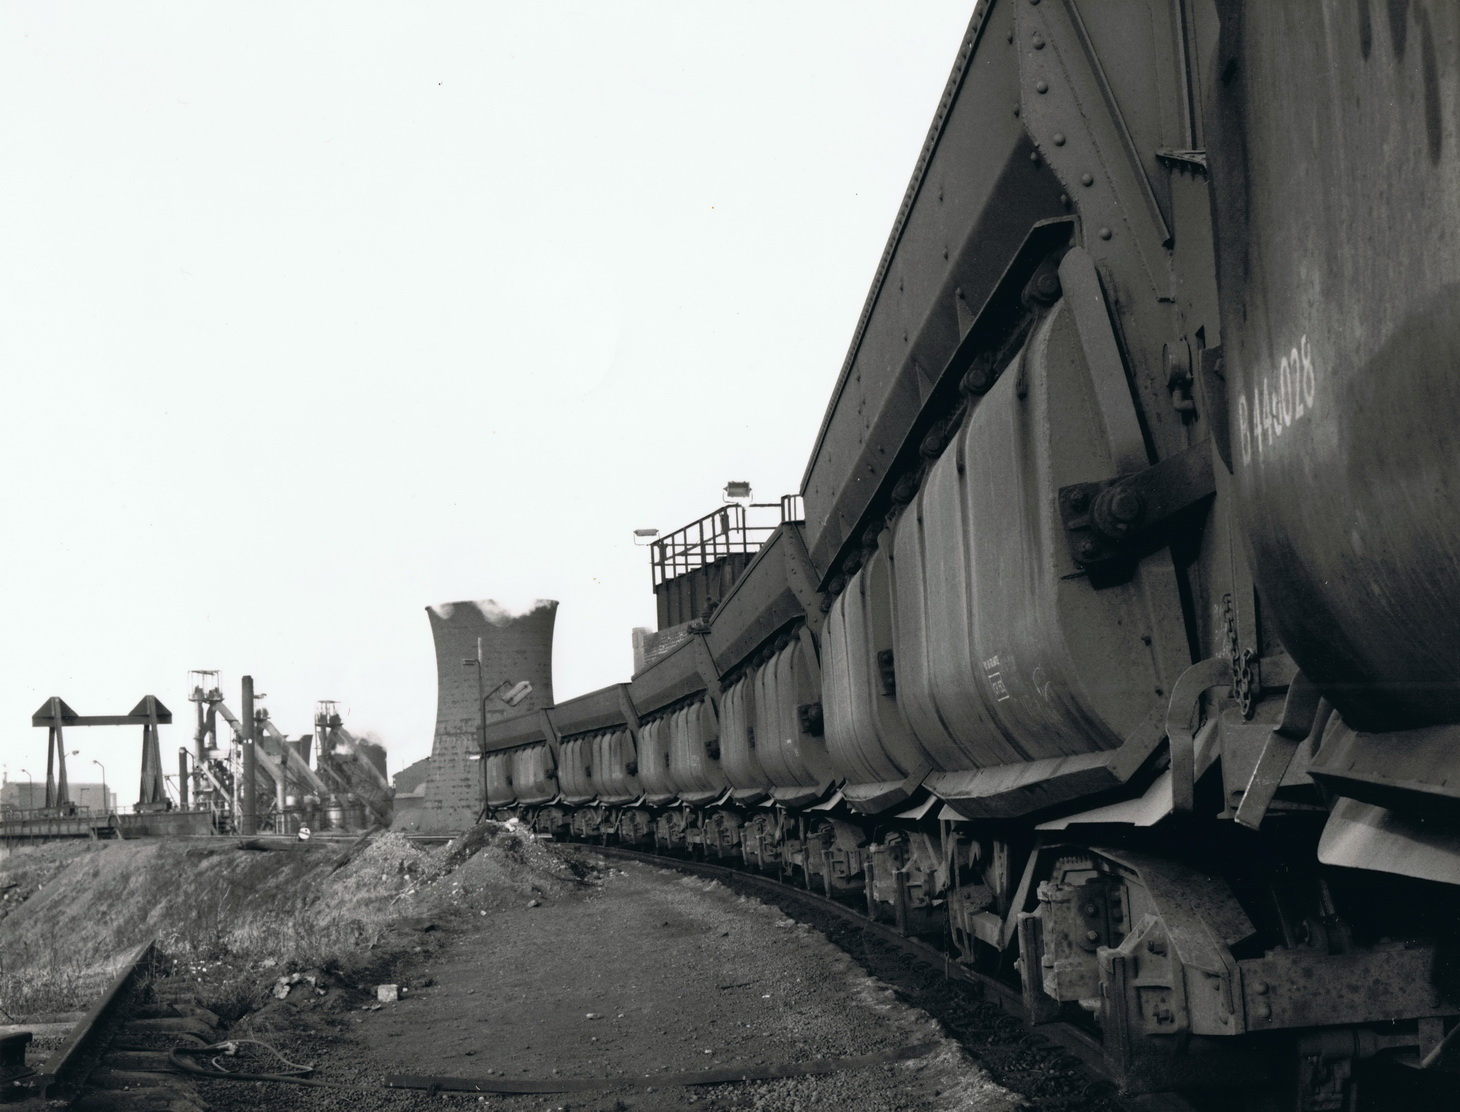 An iron ore train at Consett in 1970 with the unloading gantry in the background. Photo Authors Collection